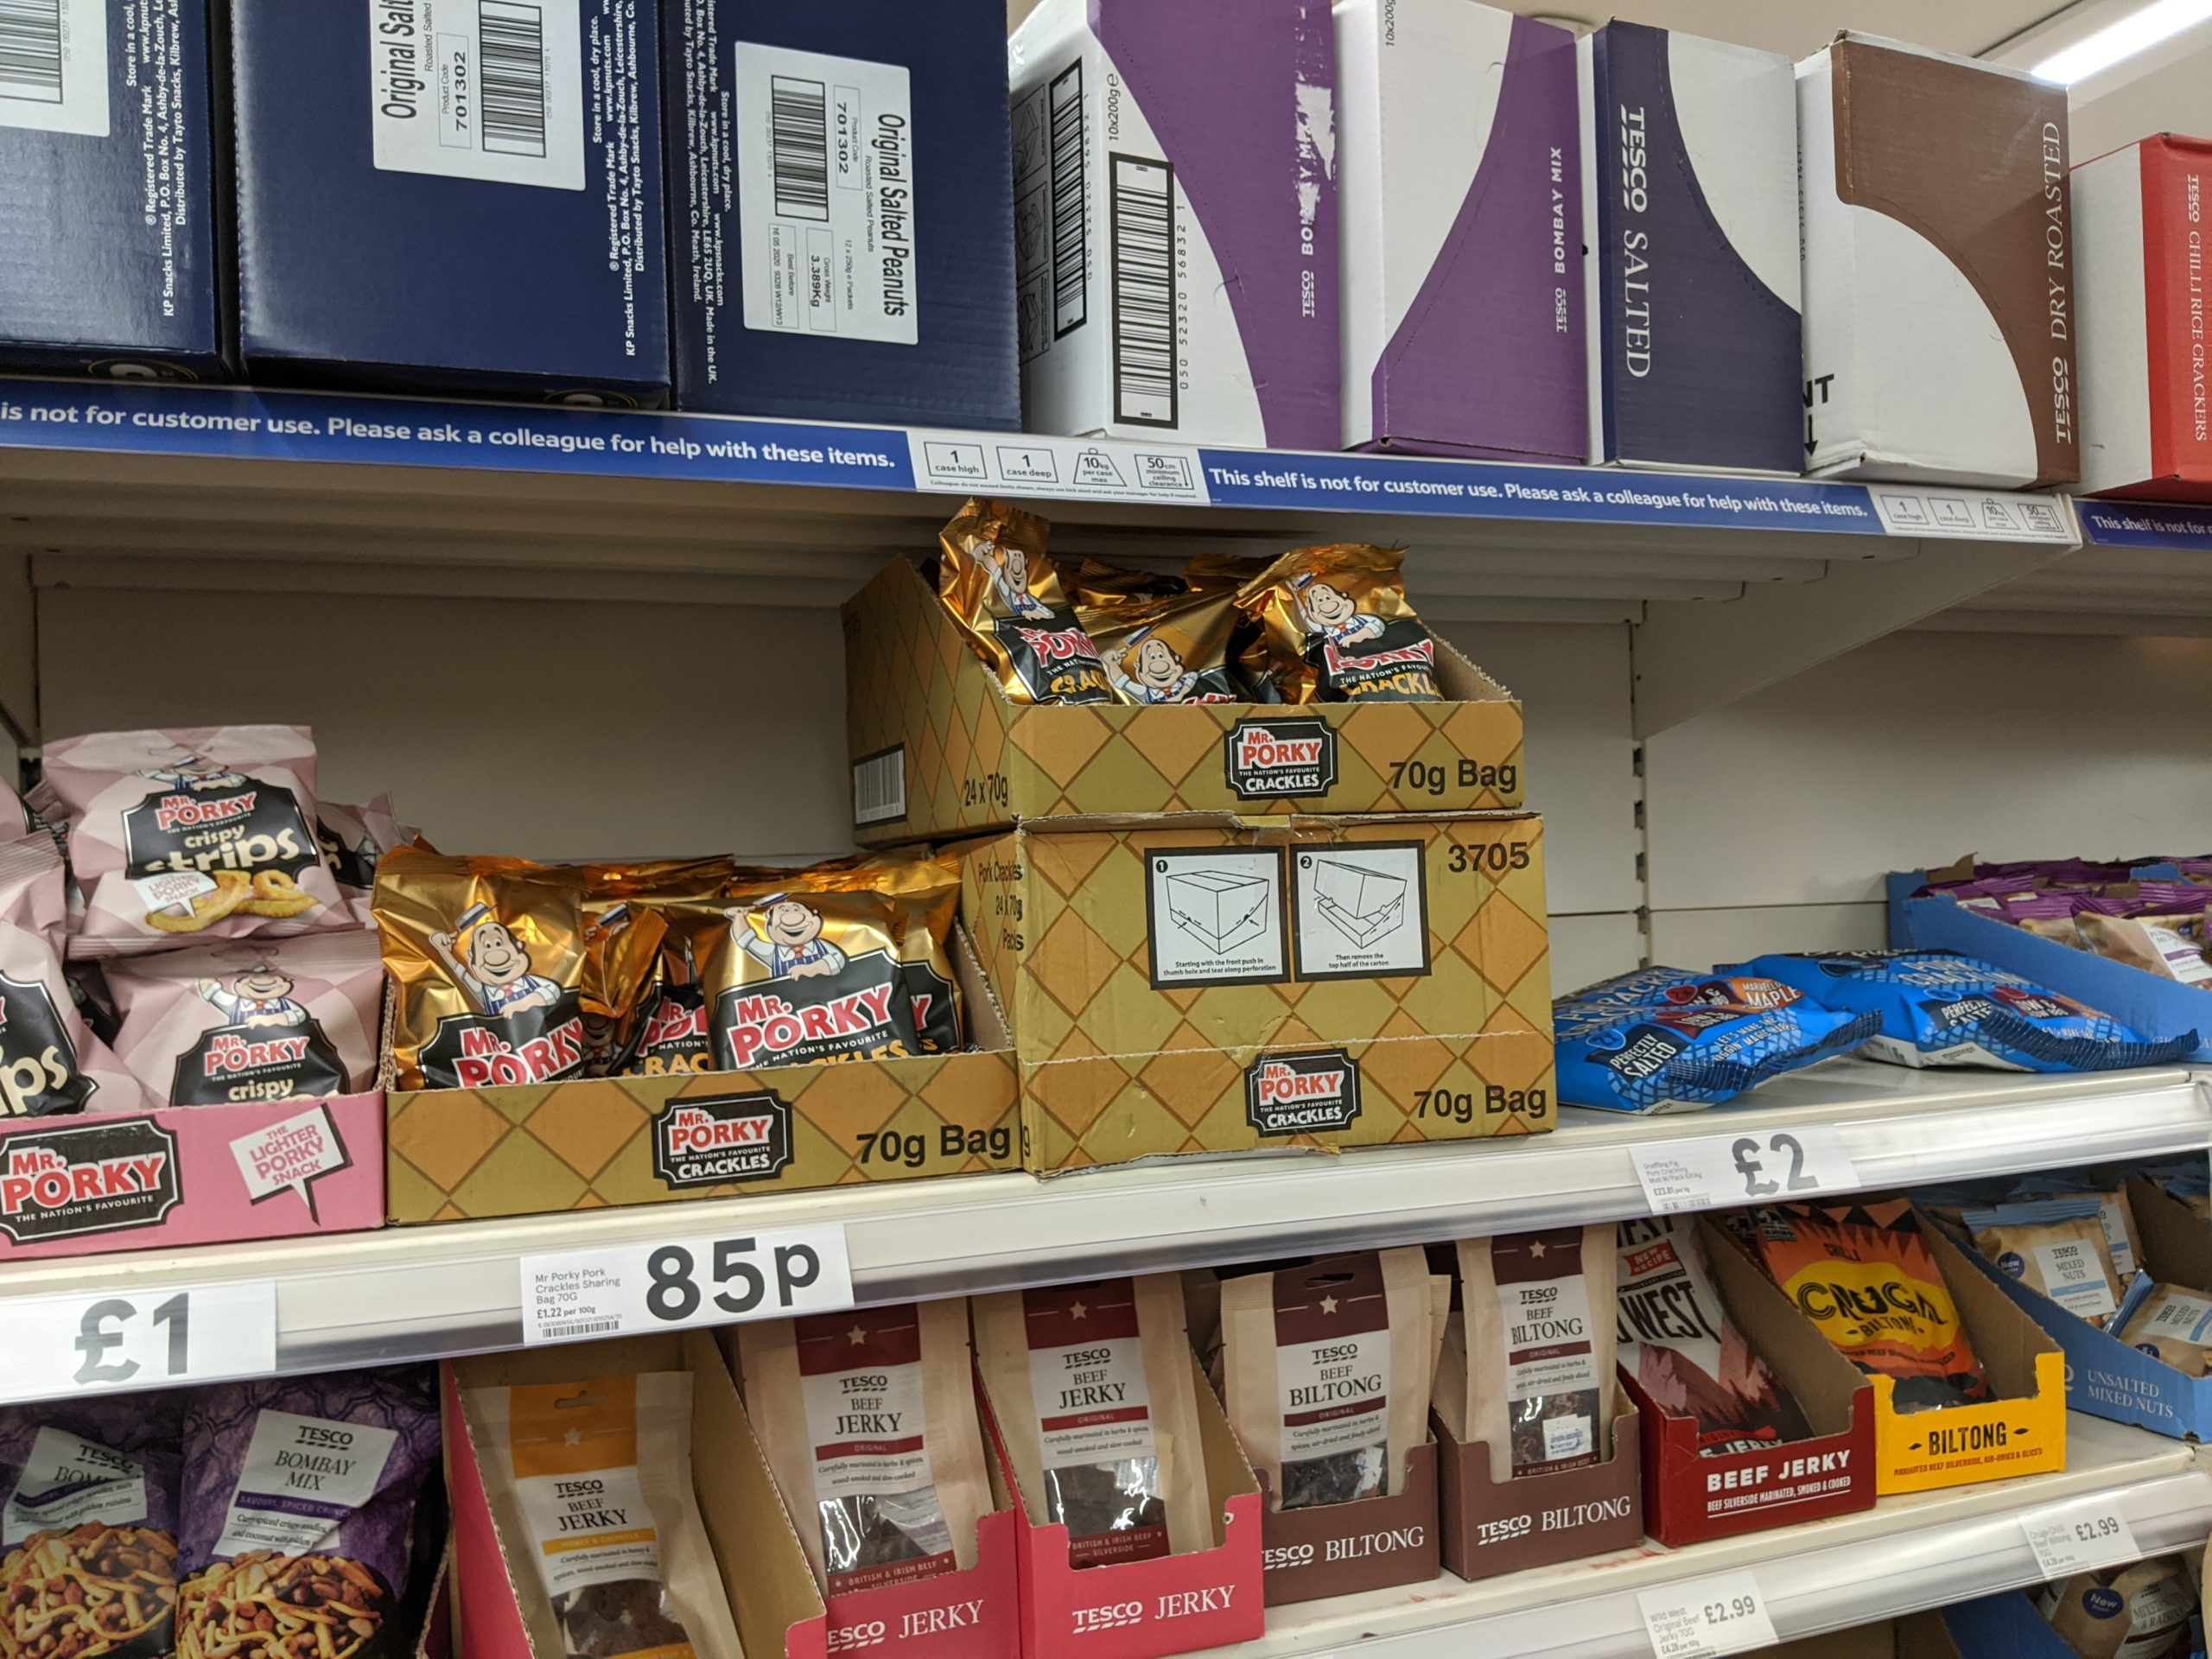 Tesco various pork scratchings scaled - Does Tesco Sell Pork Scratchings?